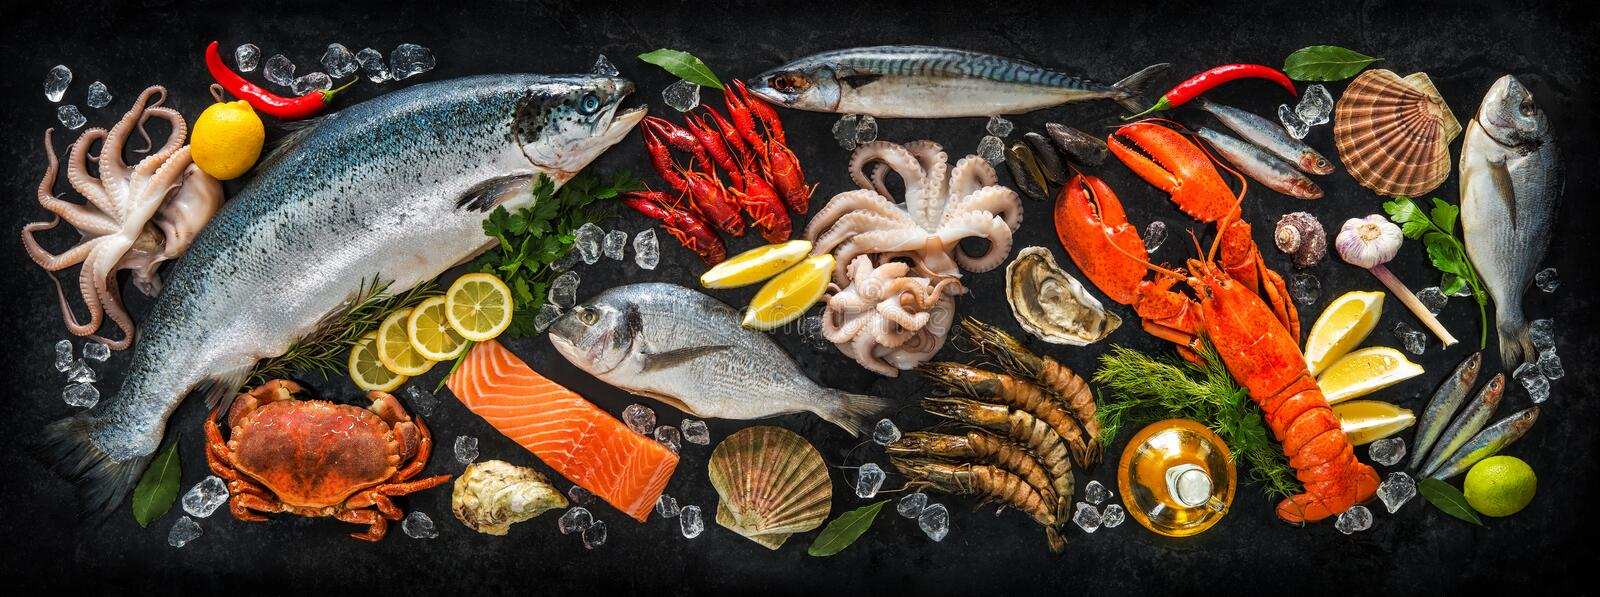 Fresh fish and seafood. Arrangement on black stone background